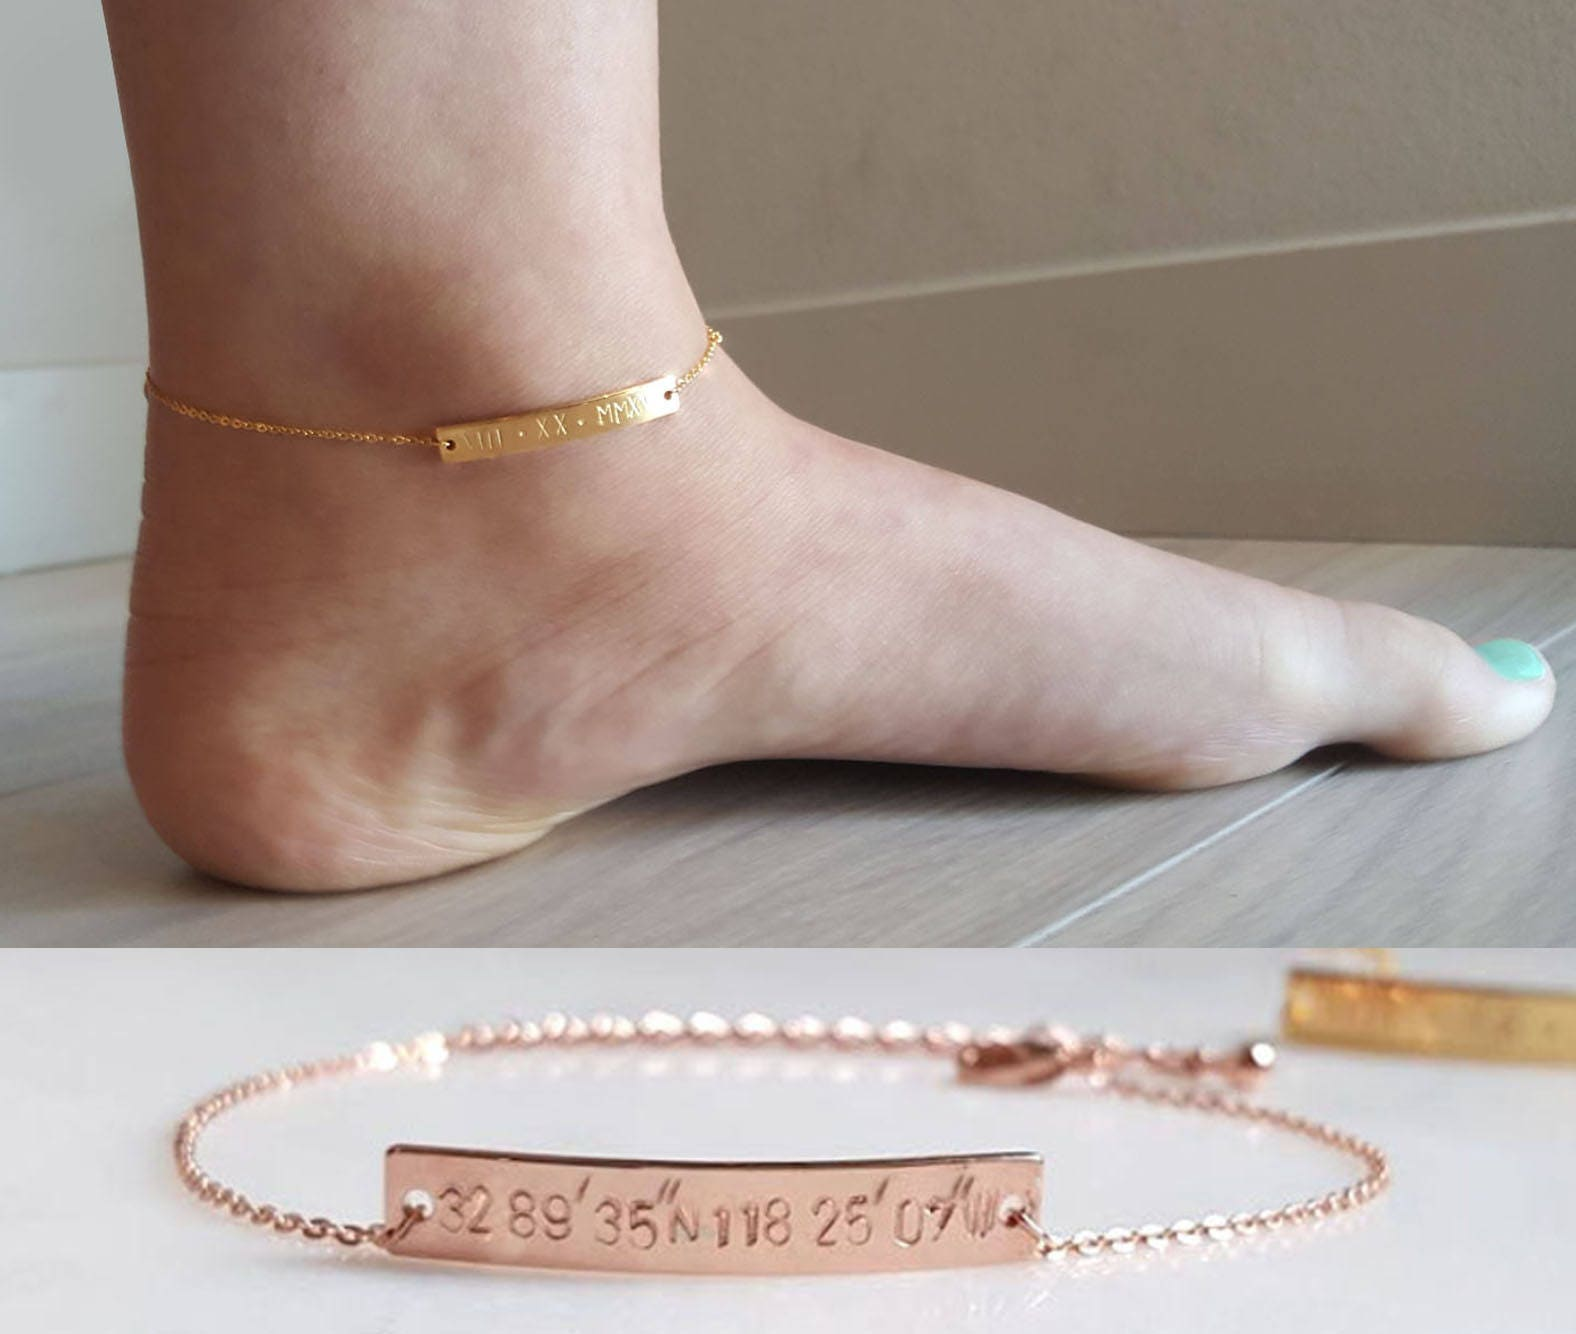 metal anklet specifics antique type fine or bohemian vintage shape pin item wcl types anklets and name brand patterns fashion